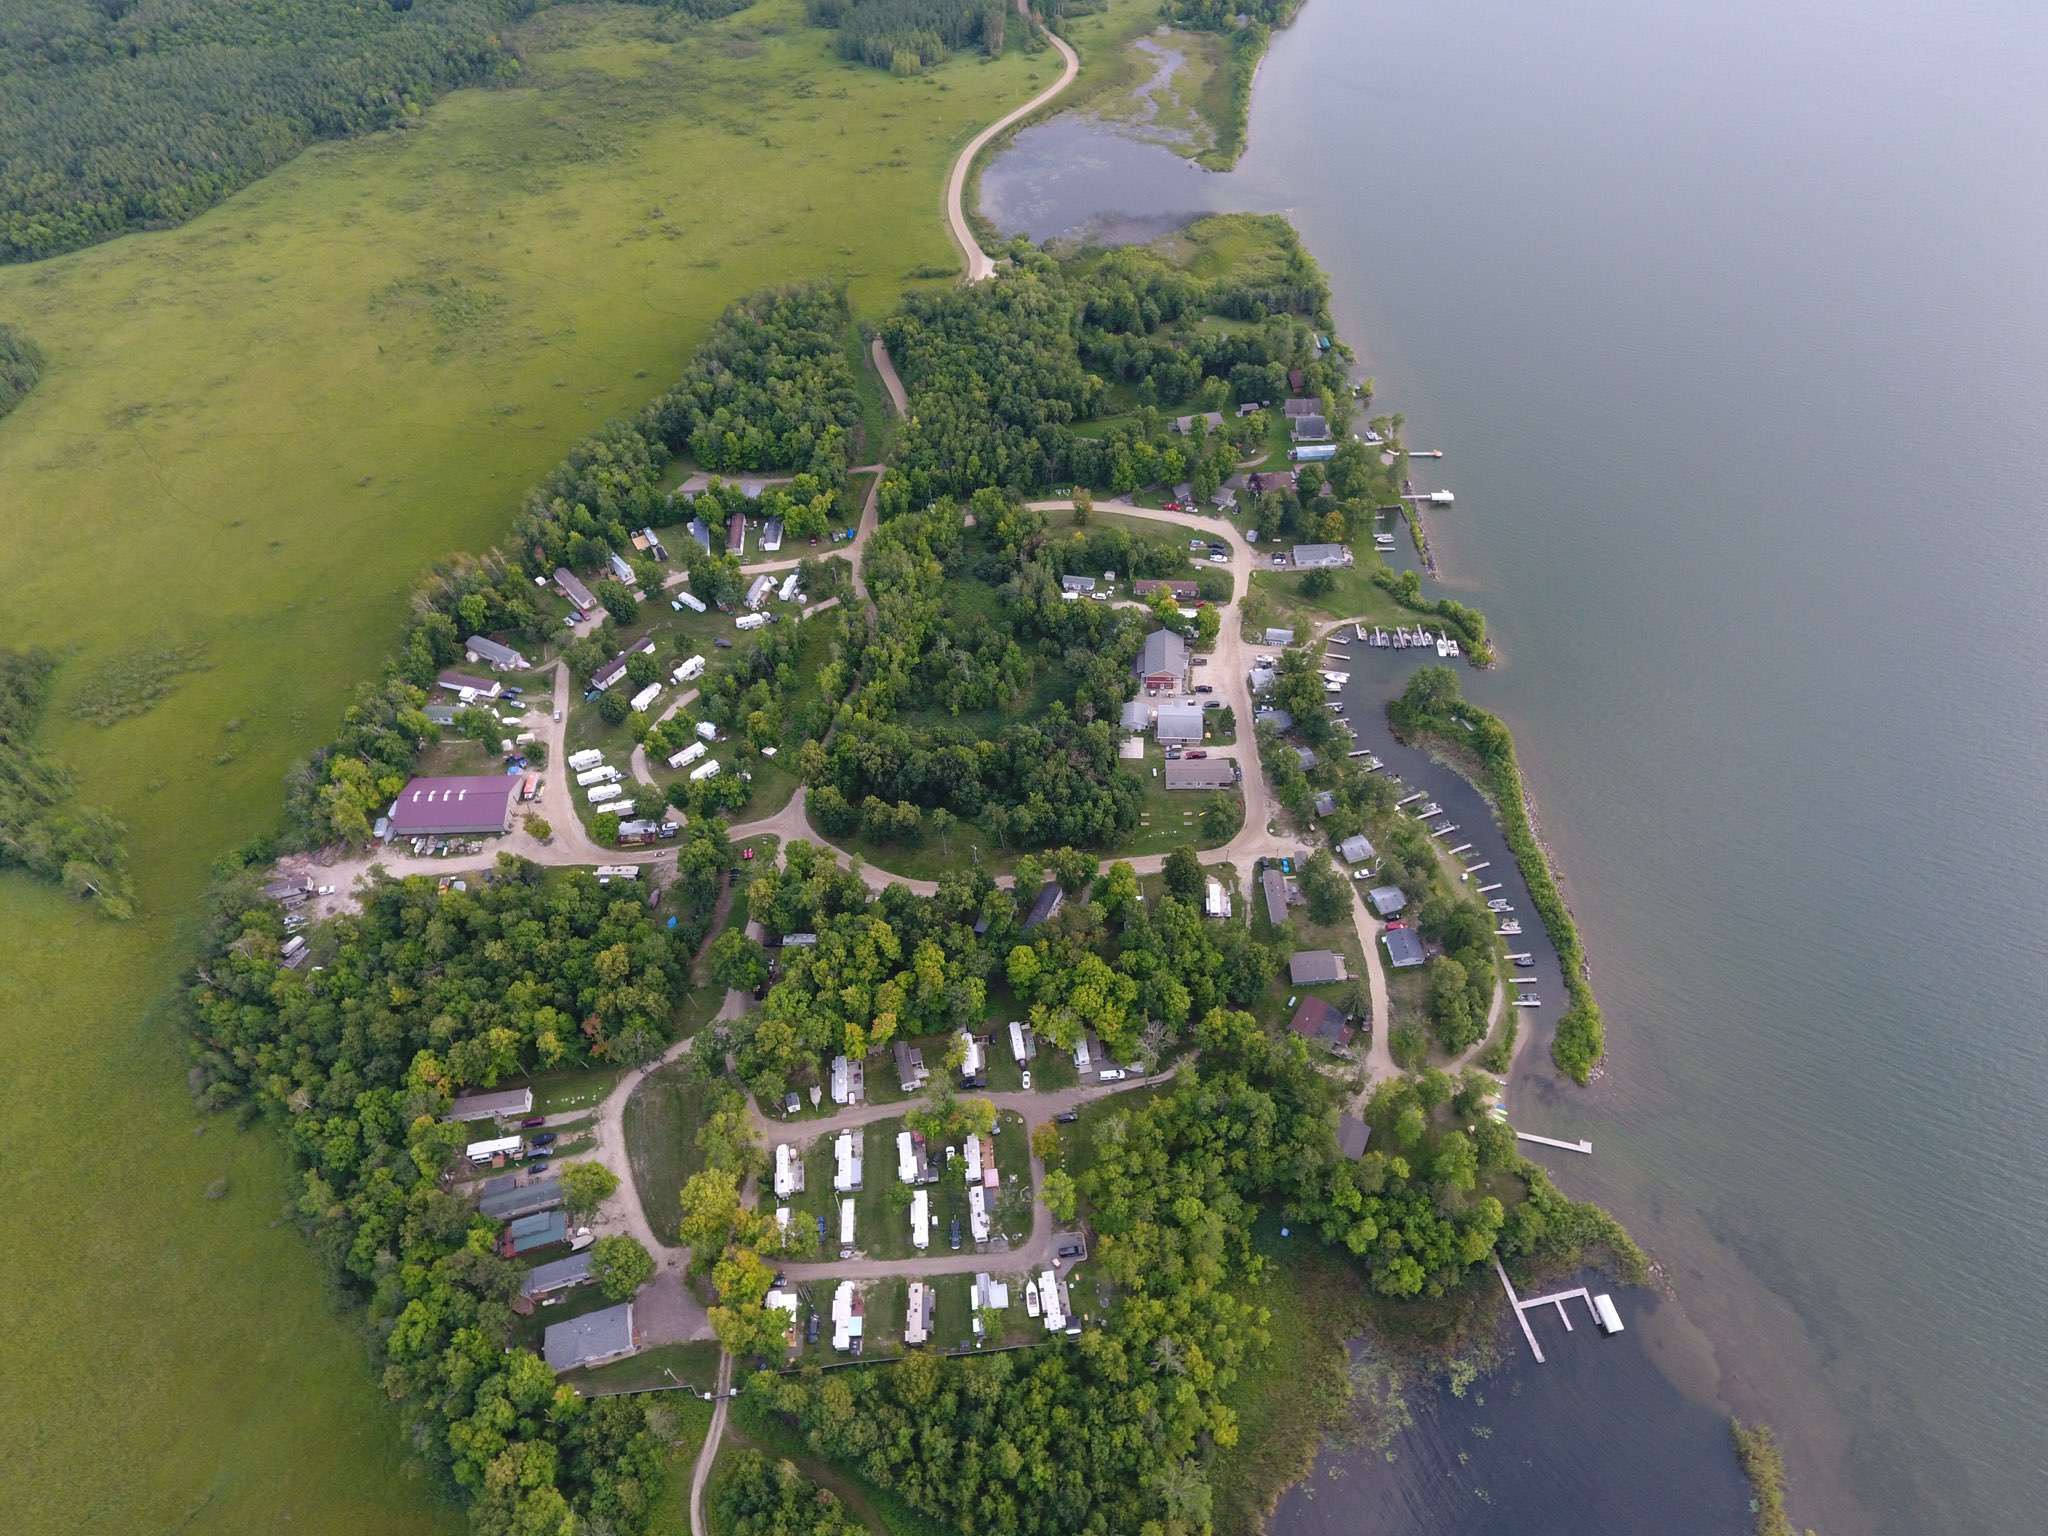 Pikedale Lodge & Resort Aerial View